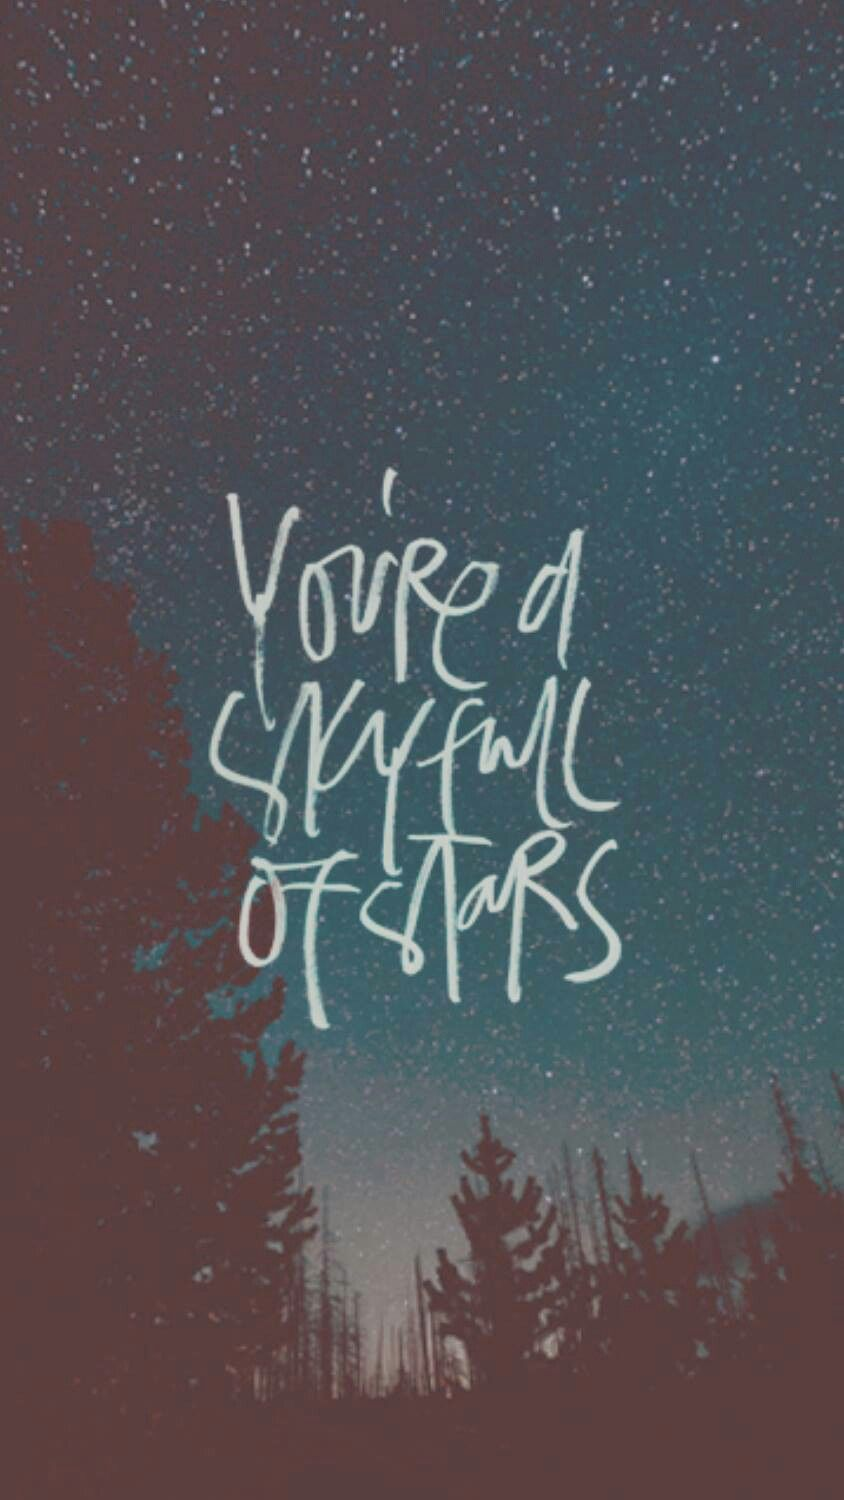 A Sky Full Of Star Coldplay Wallpaper Coldplay Wallpaper Quotes